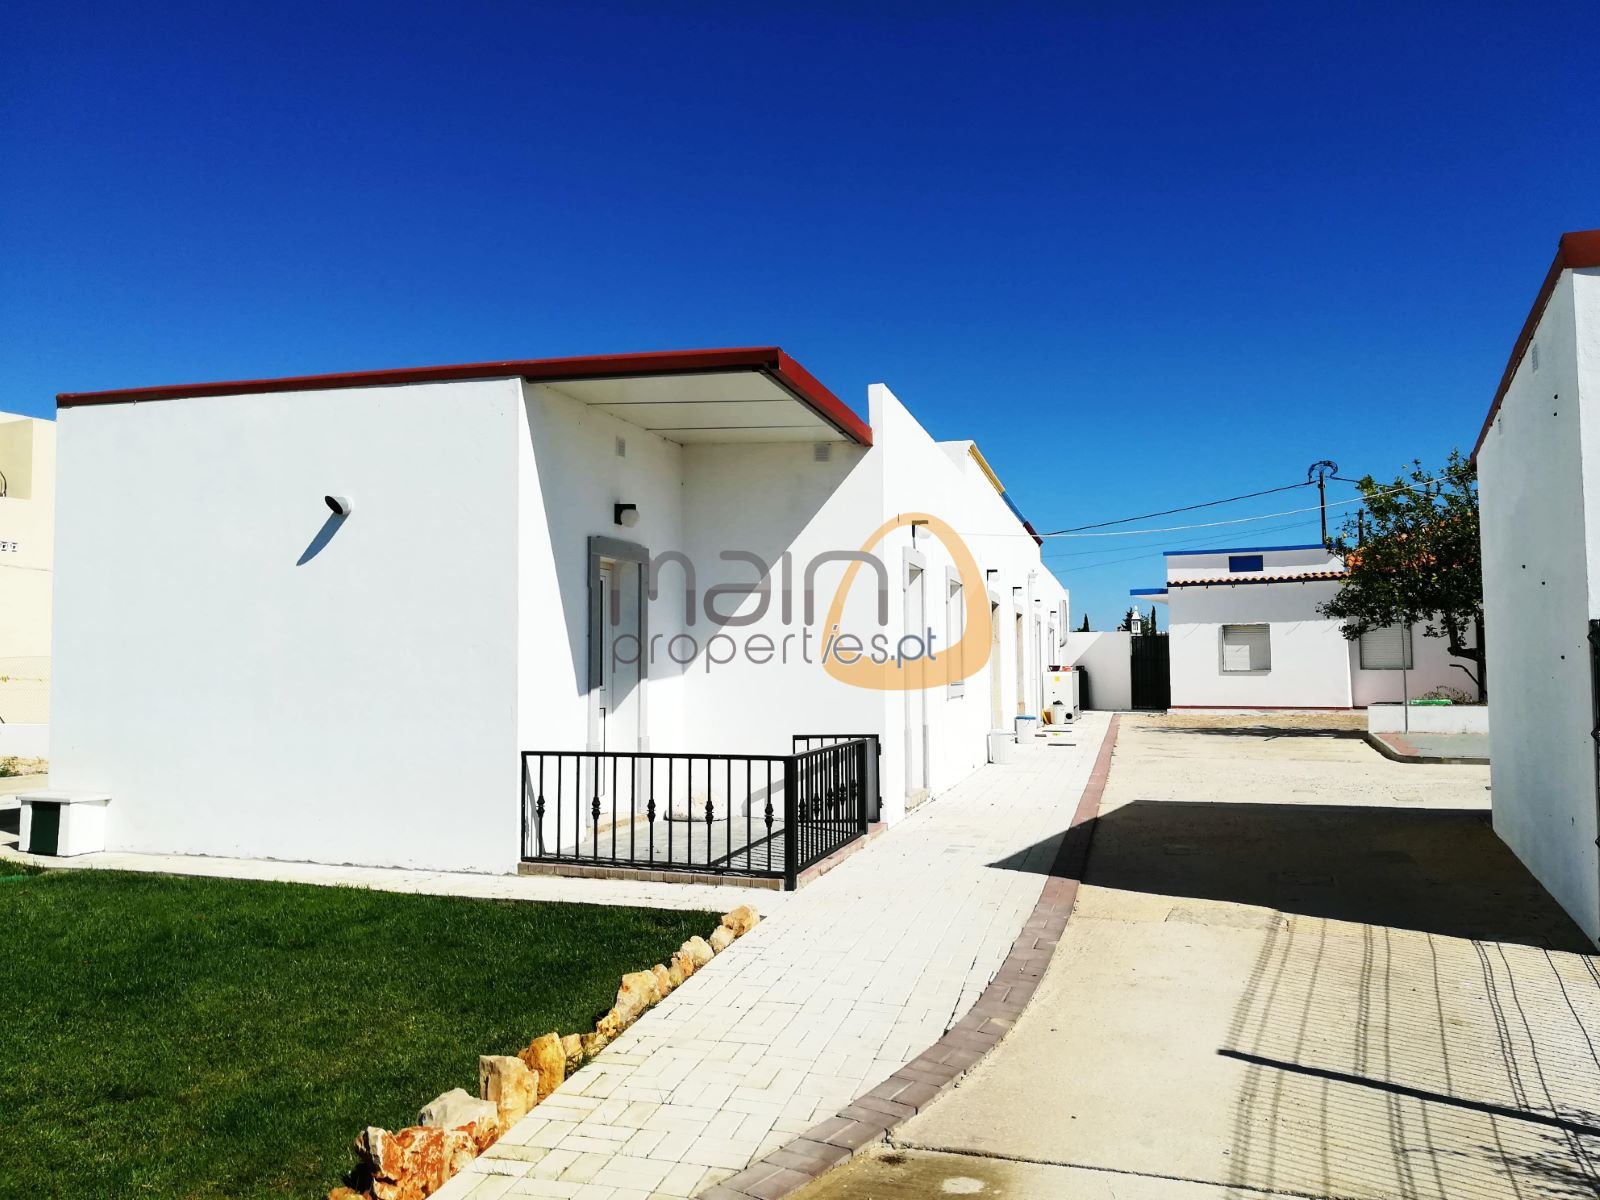 db8970d29 Investment - 7 Houses and Shop in the center of Almancil ...